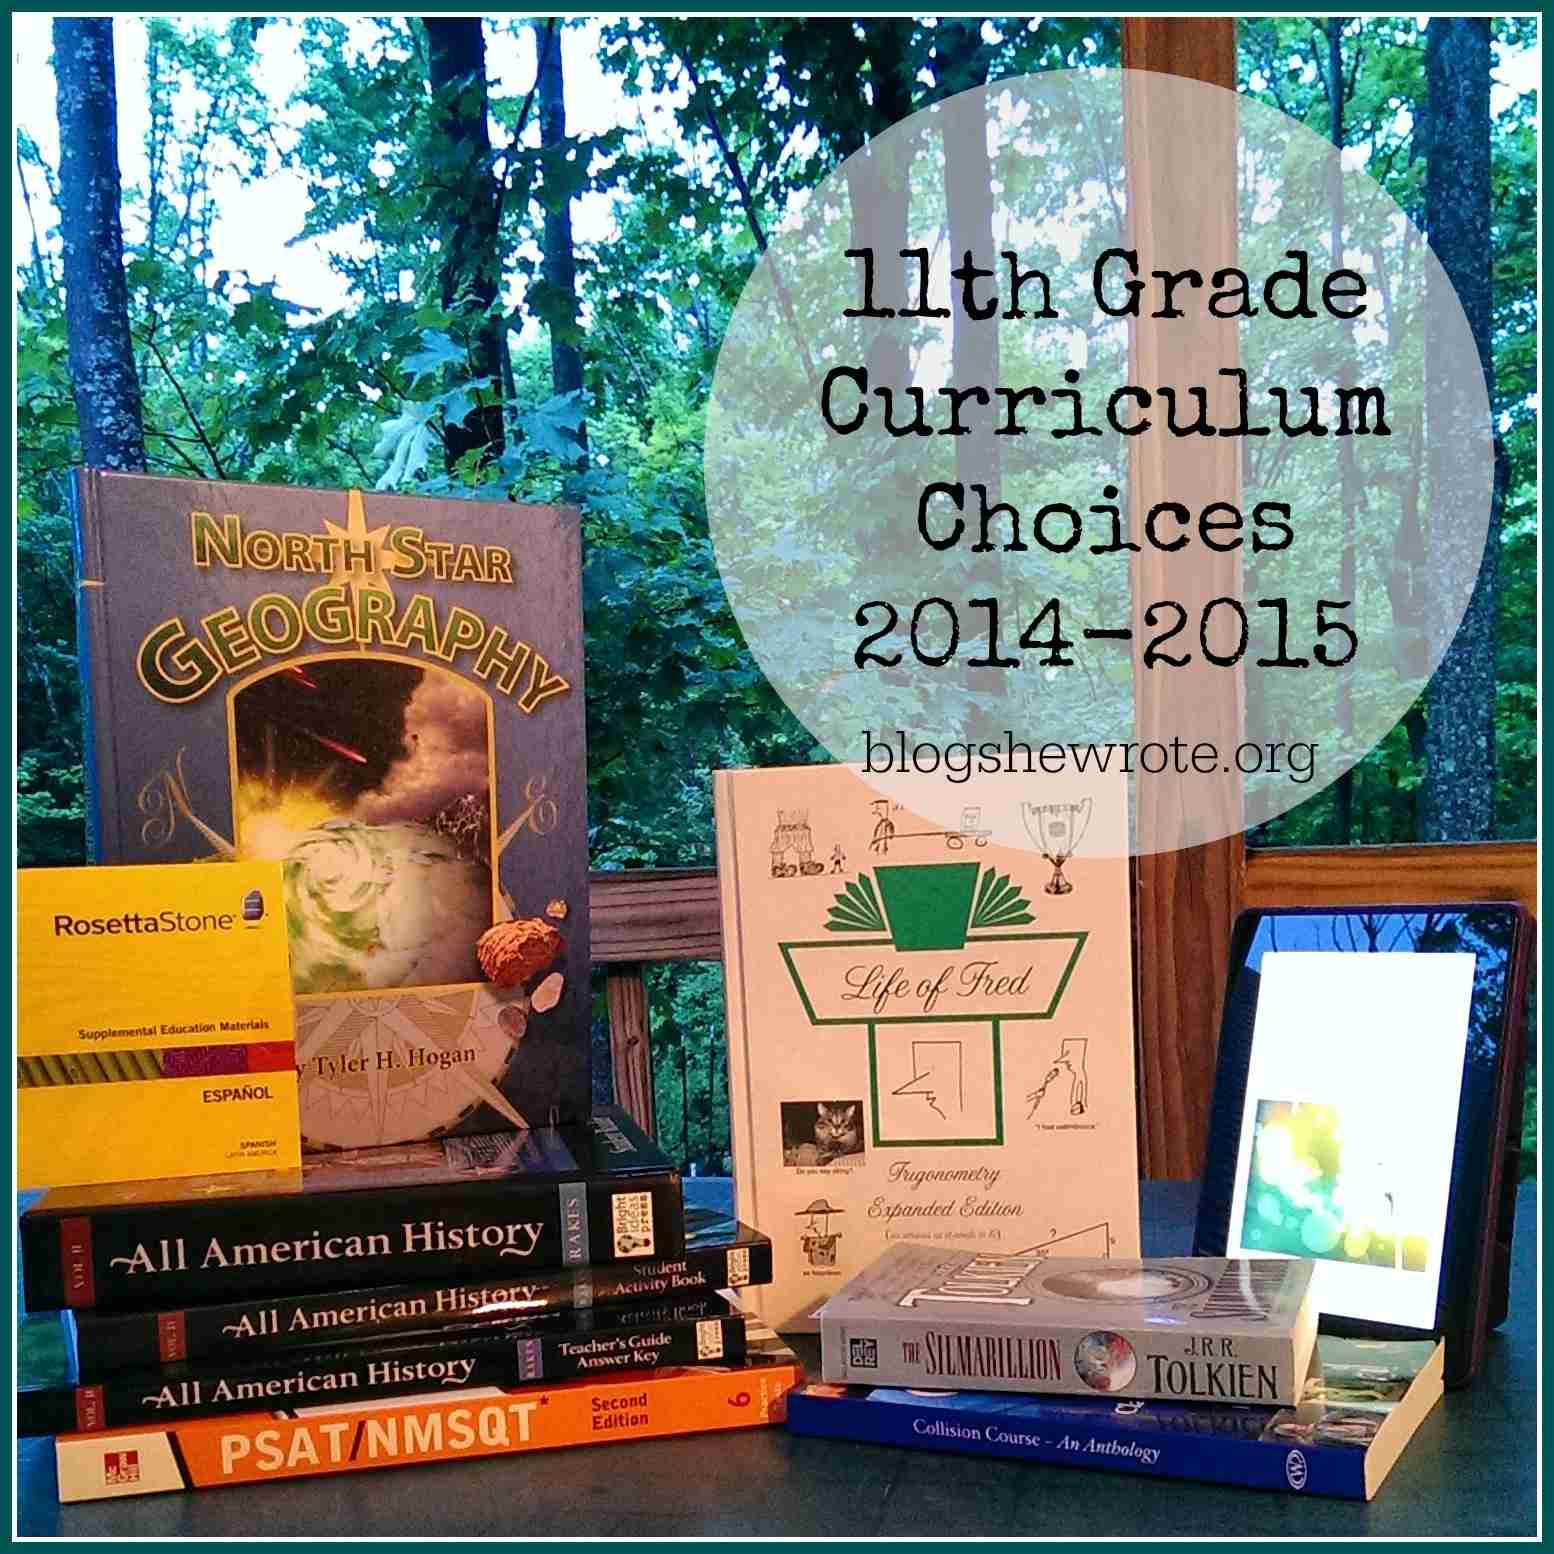 Blog, She Wrote: Homeschool Curriculum Choices 2014-2015